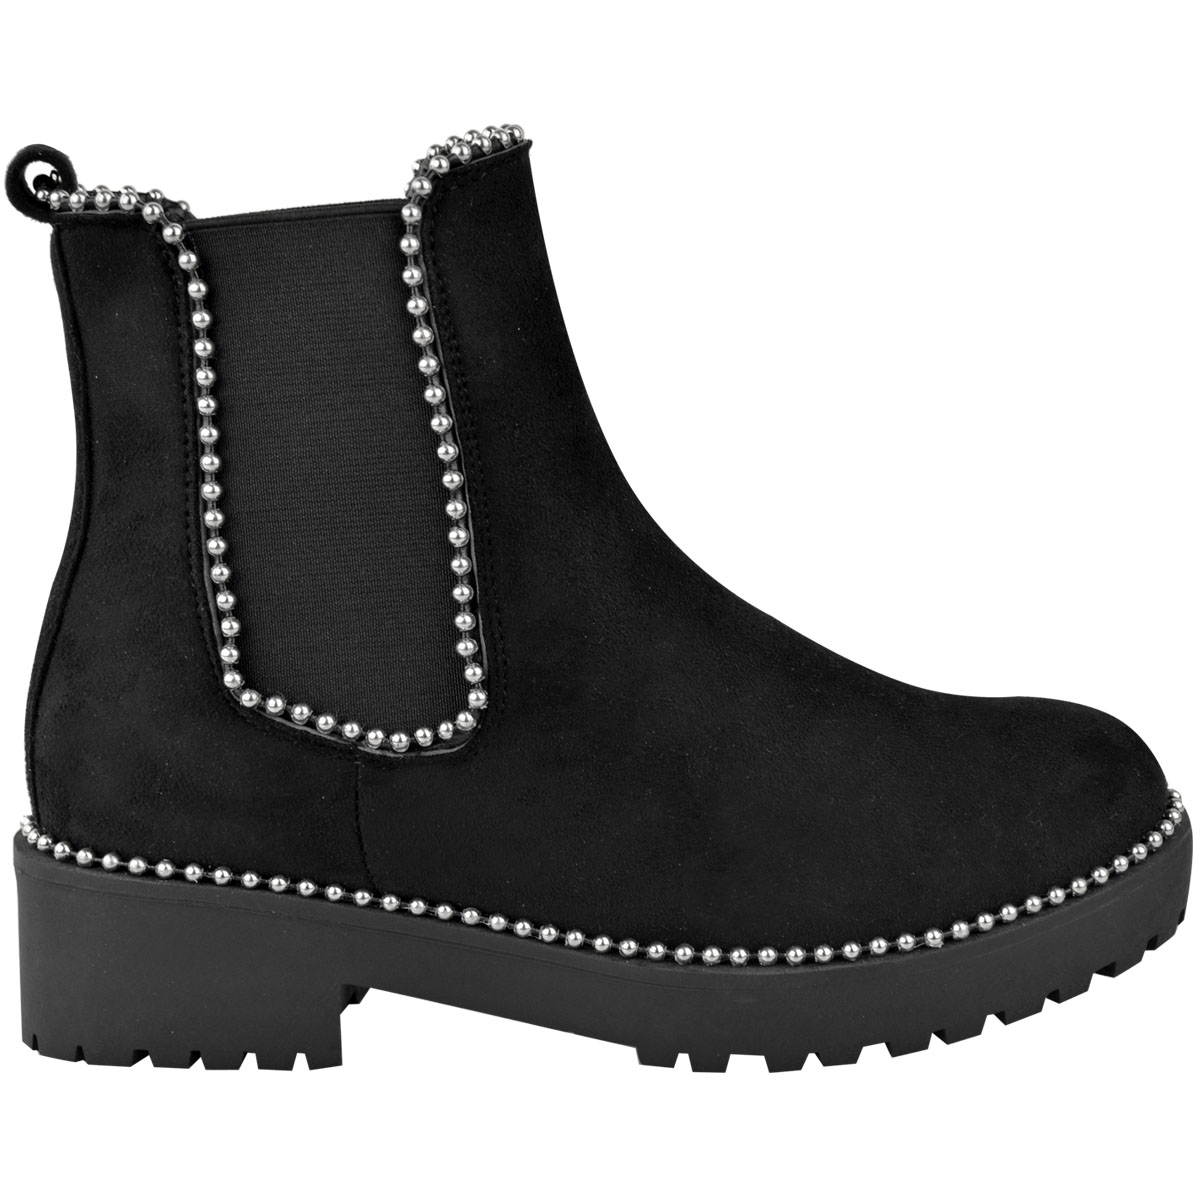 thumbnail 16 - Womens Ankle Chelsea Boots Beaded Studded Elastic Stretch Winter Shoes Size New